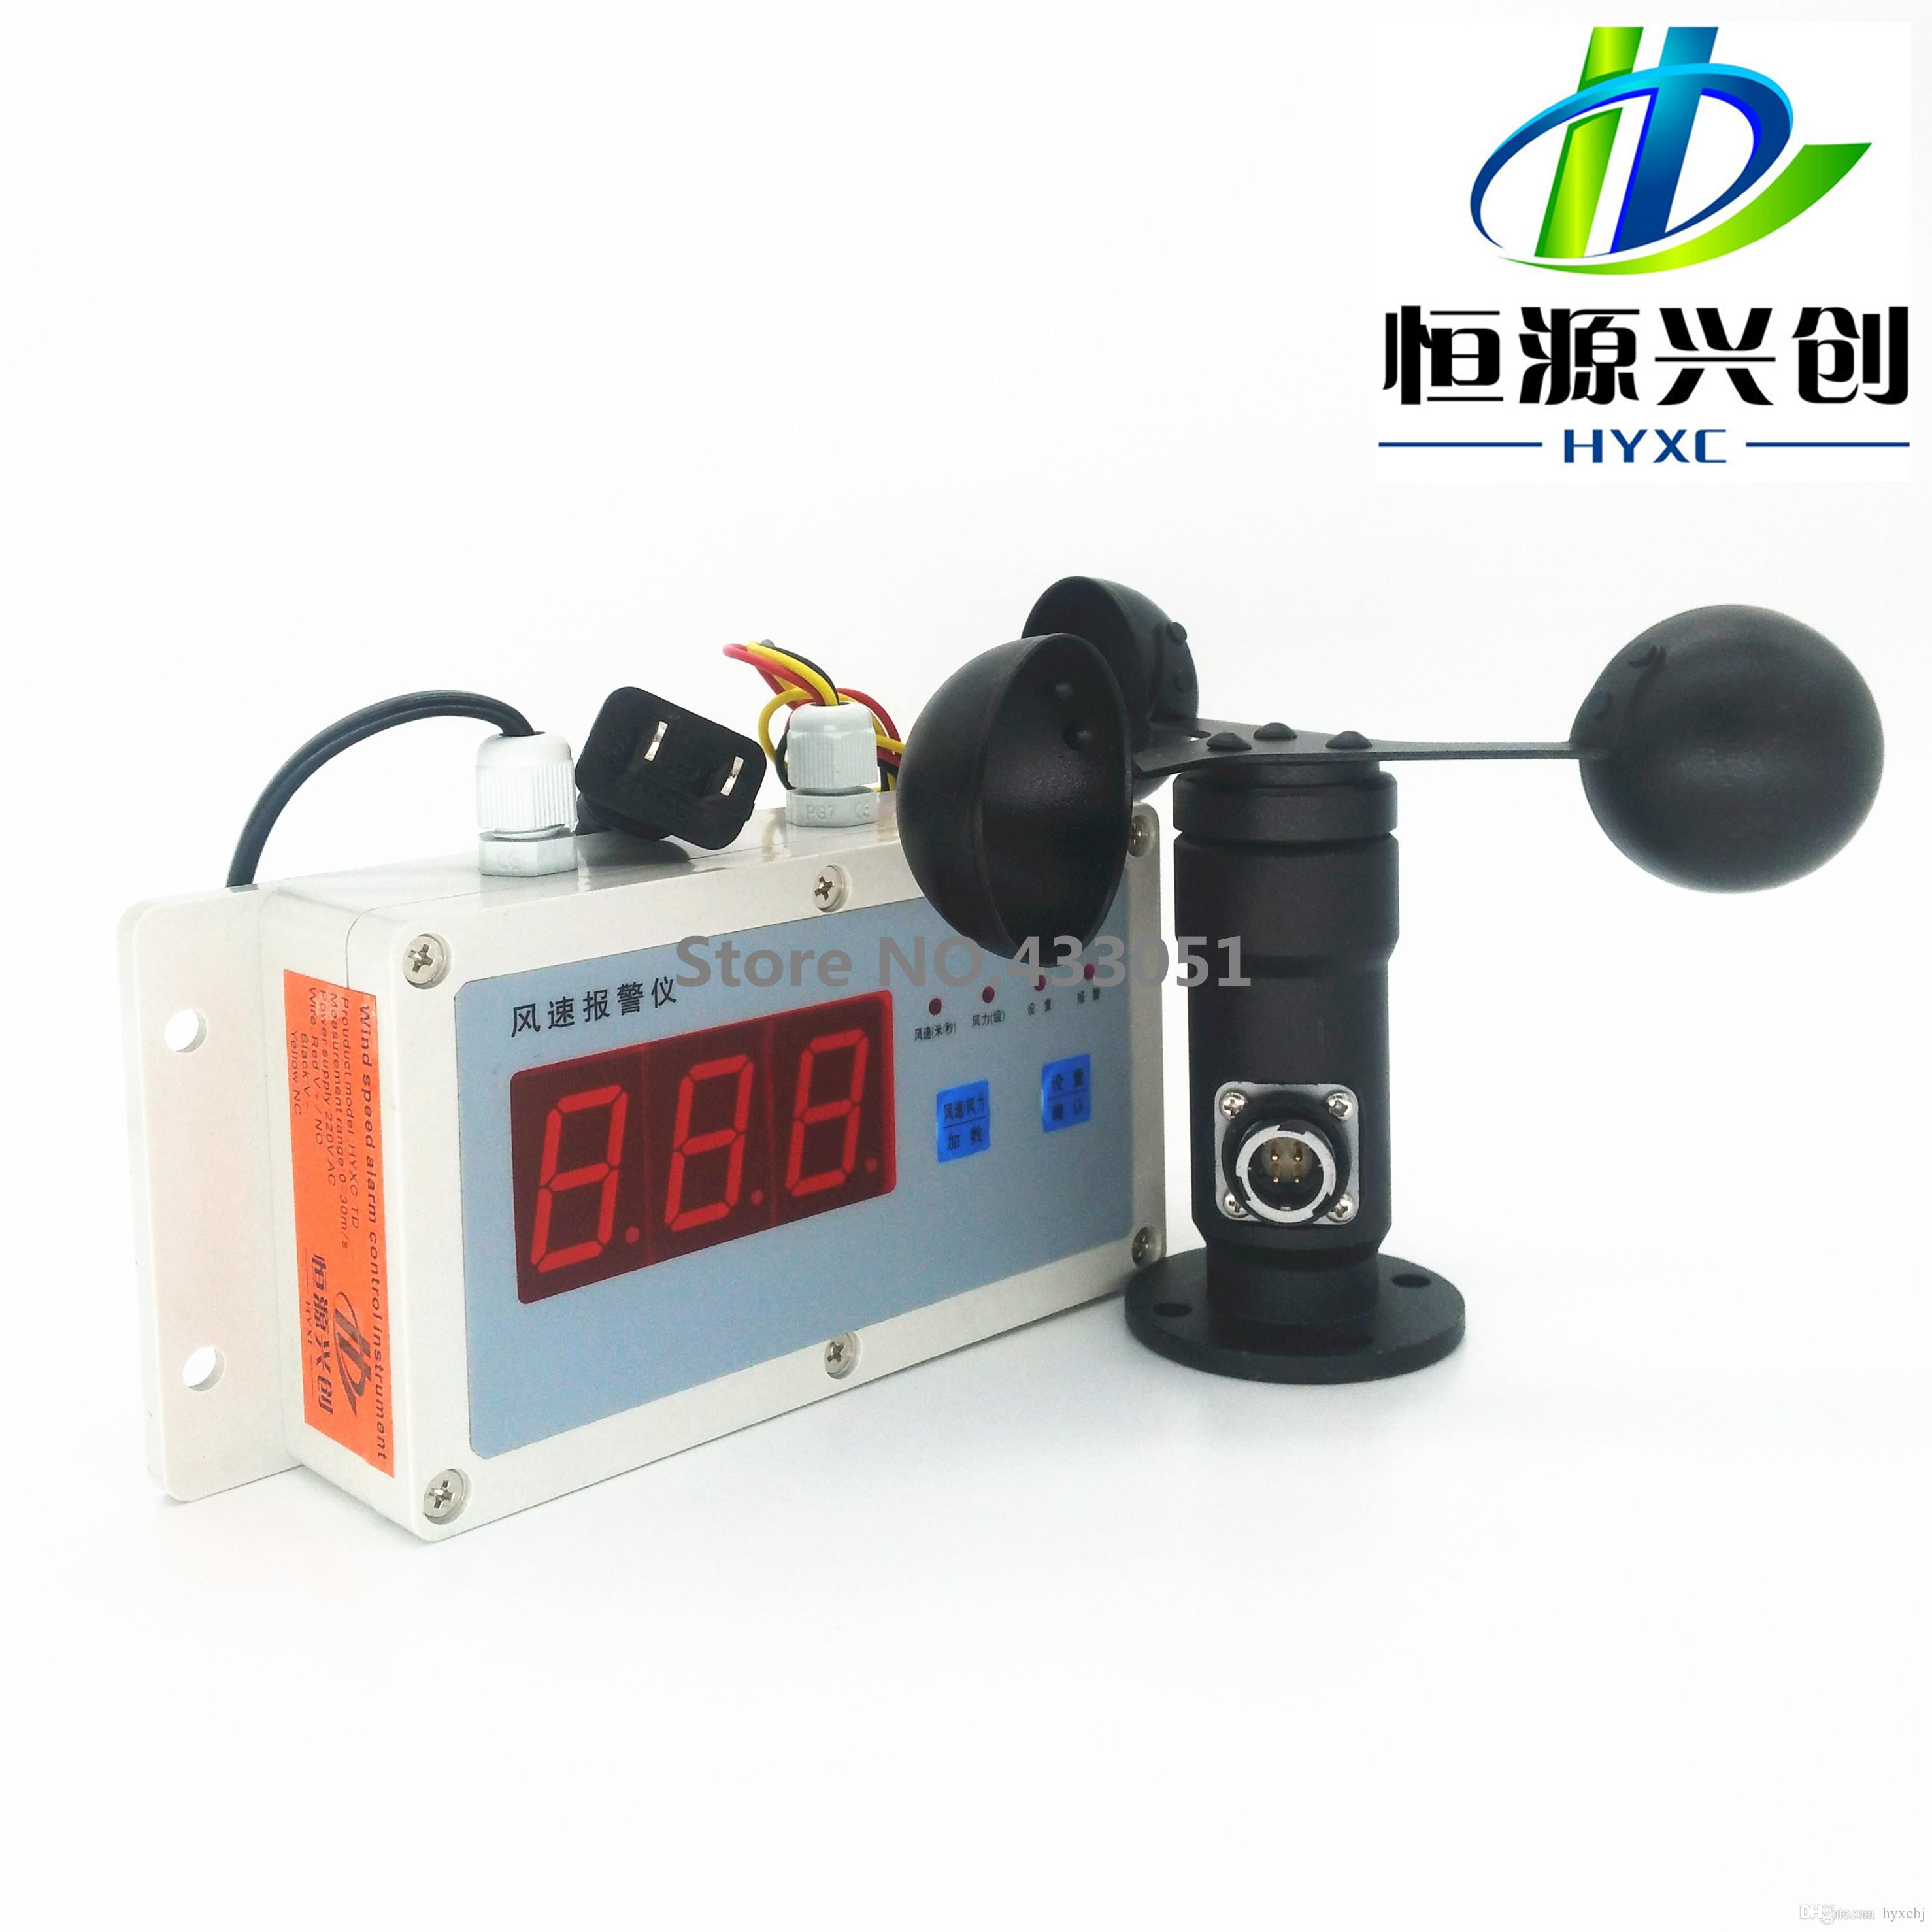 Wind Speed Indicator For Cranes : Wind speed measurement and control instrument